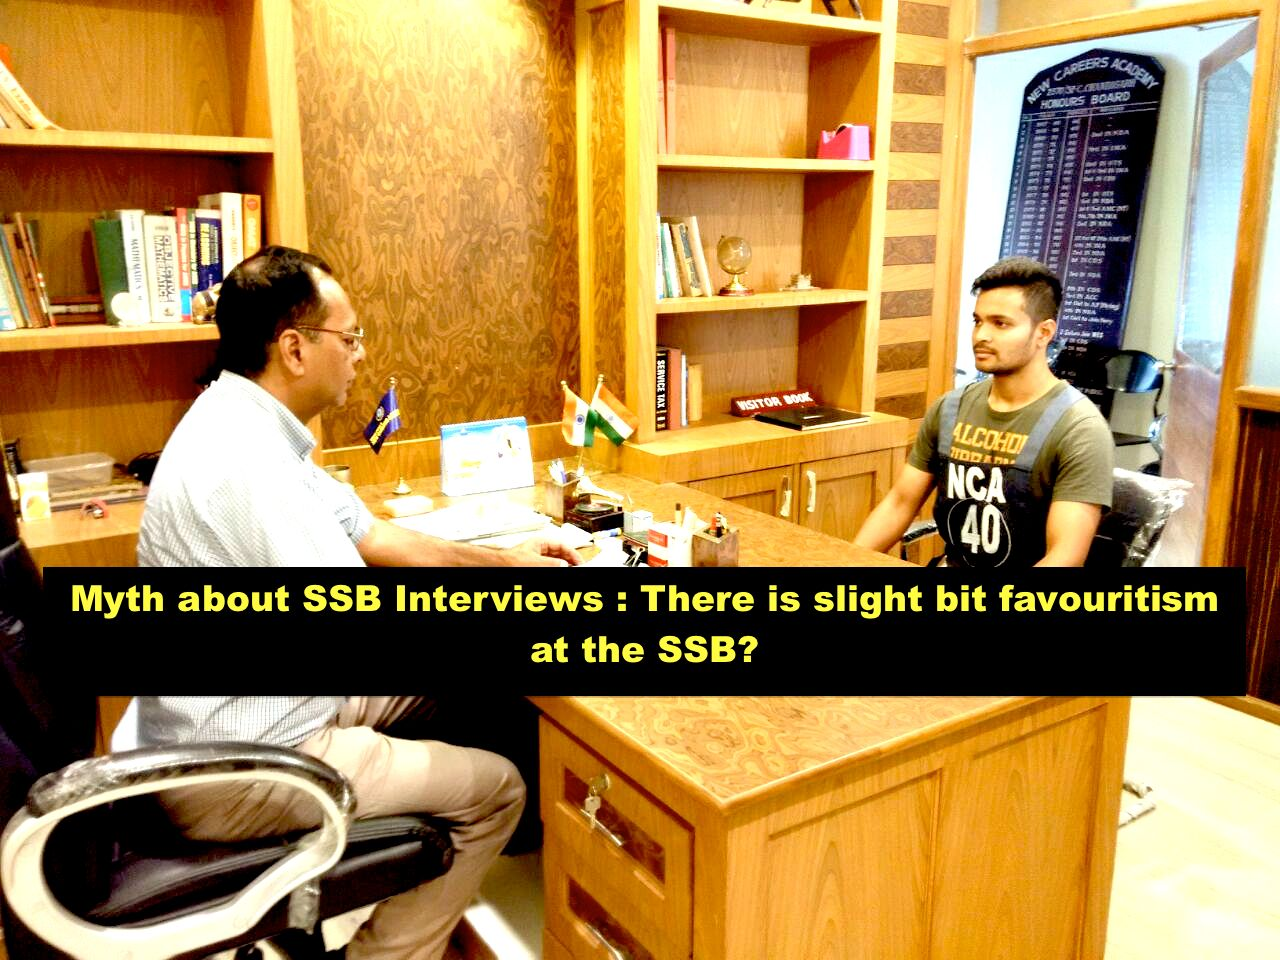 SSB interviews coaching in India